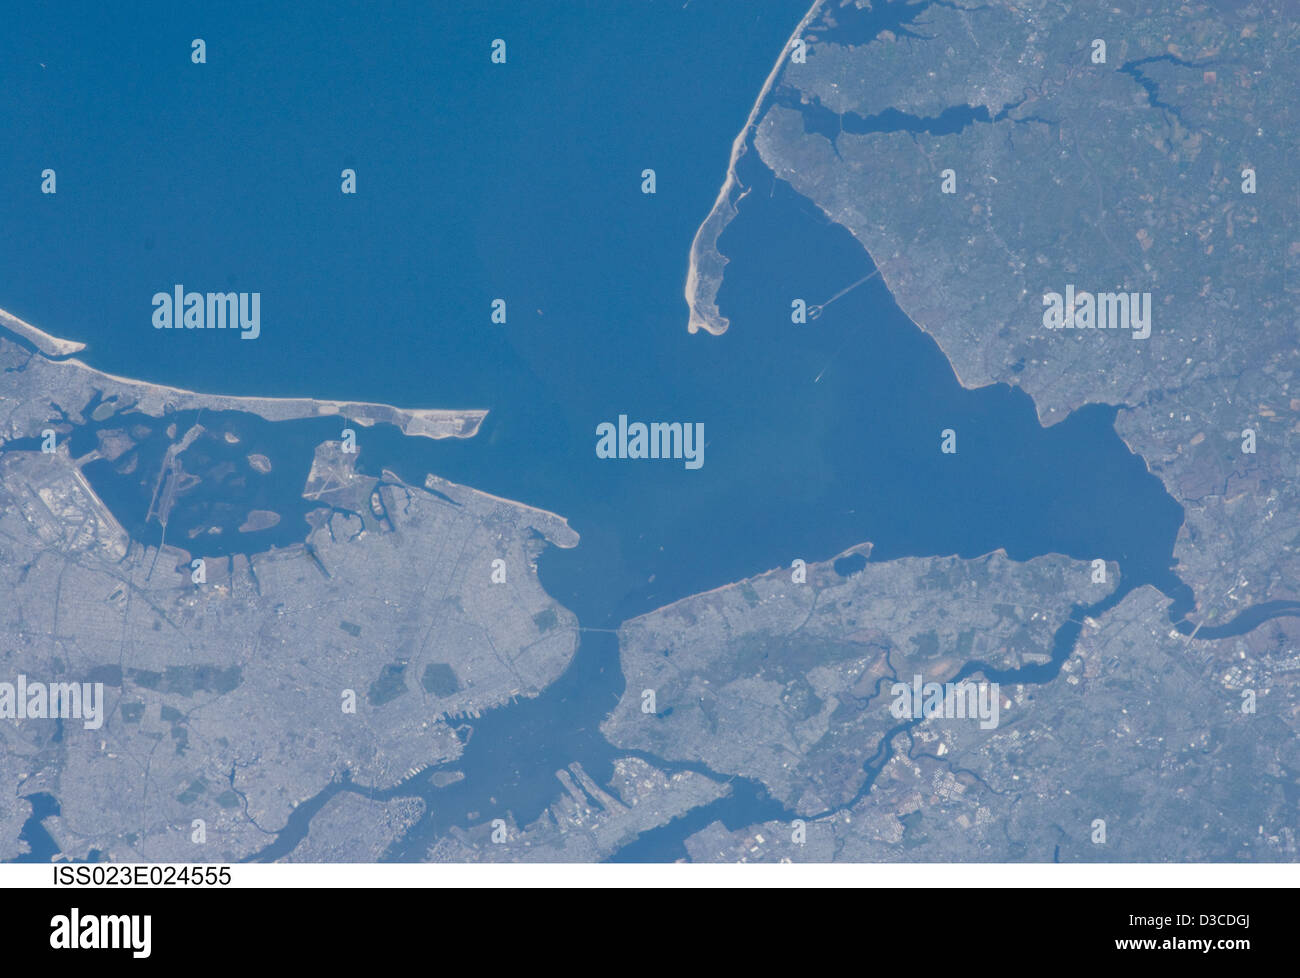 New York City, New Jersey (NASA, International Space Station Science, 03/14/10) - Stock Image